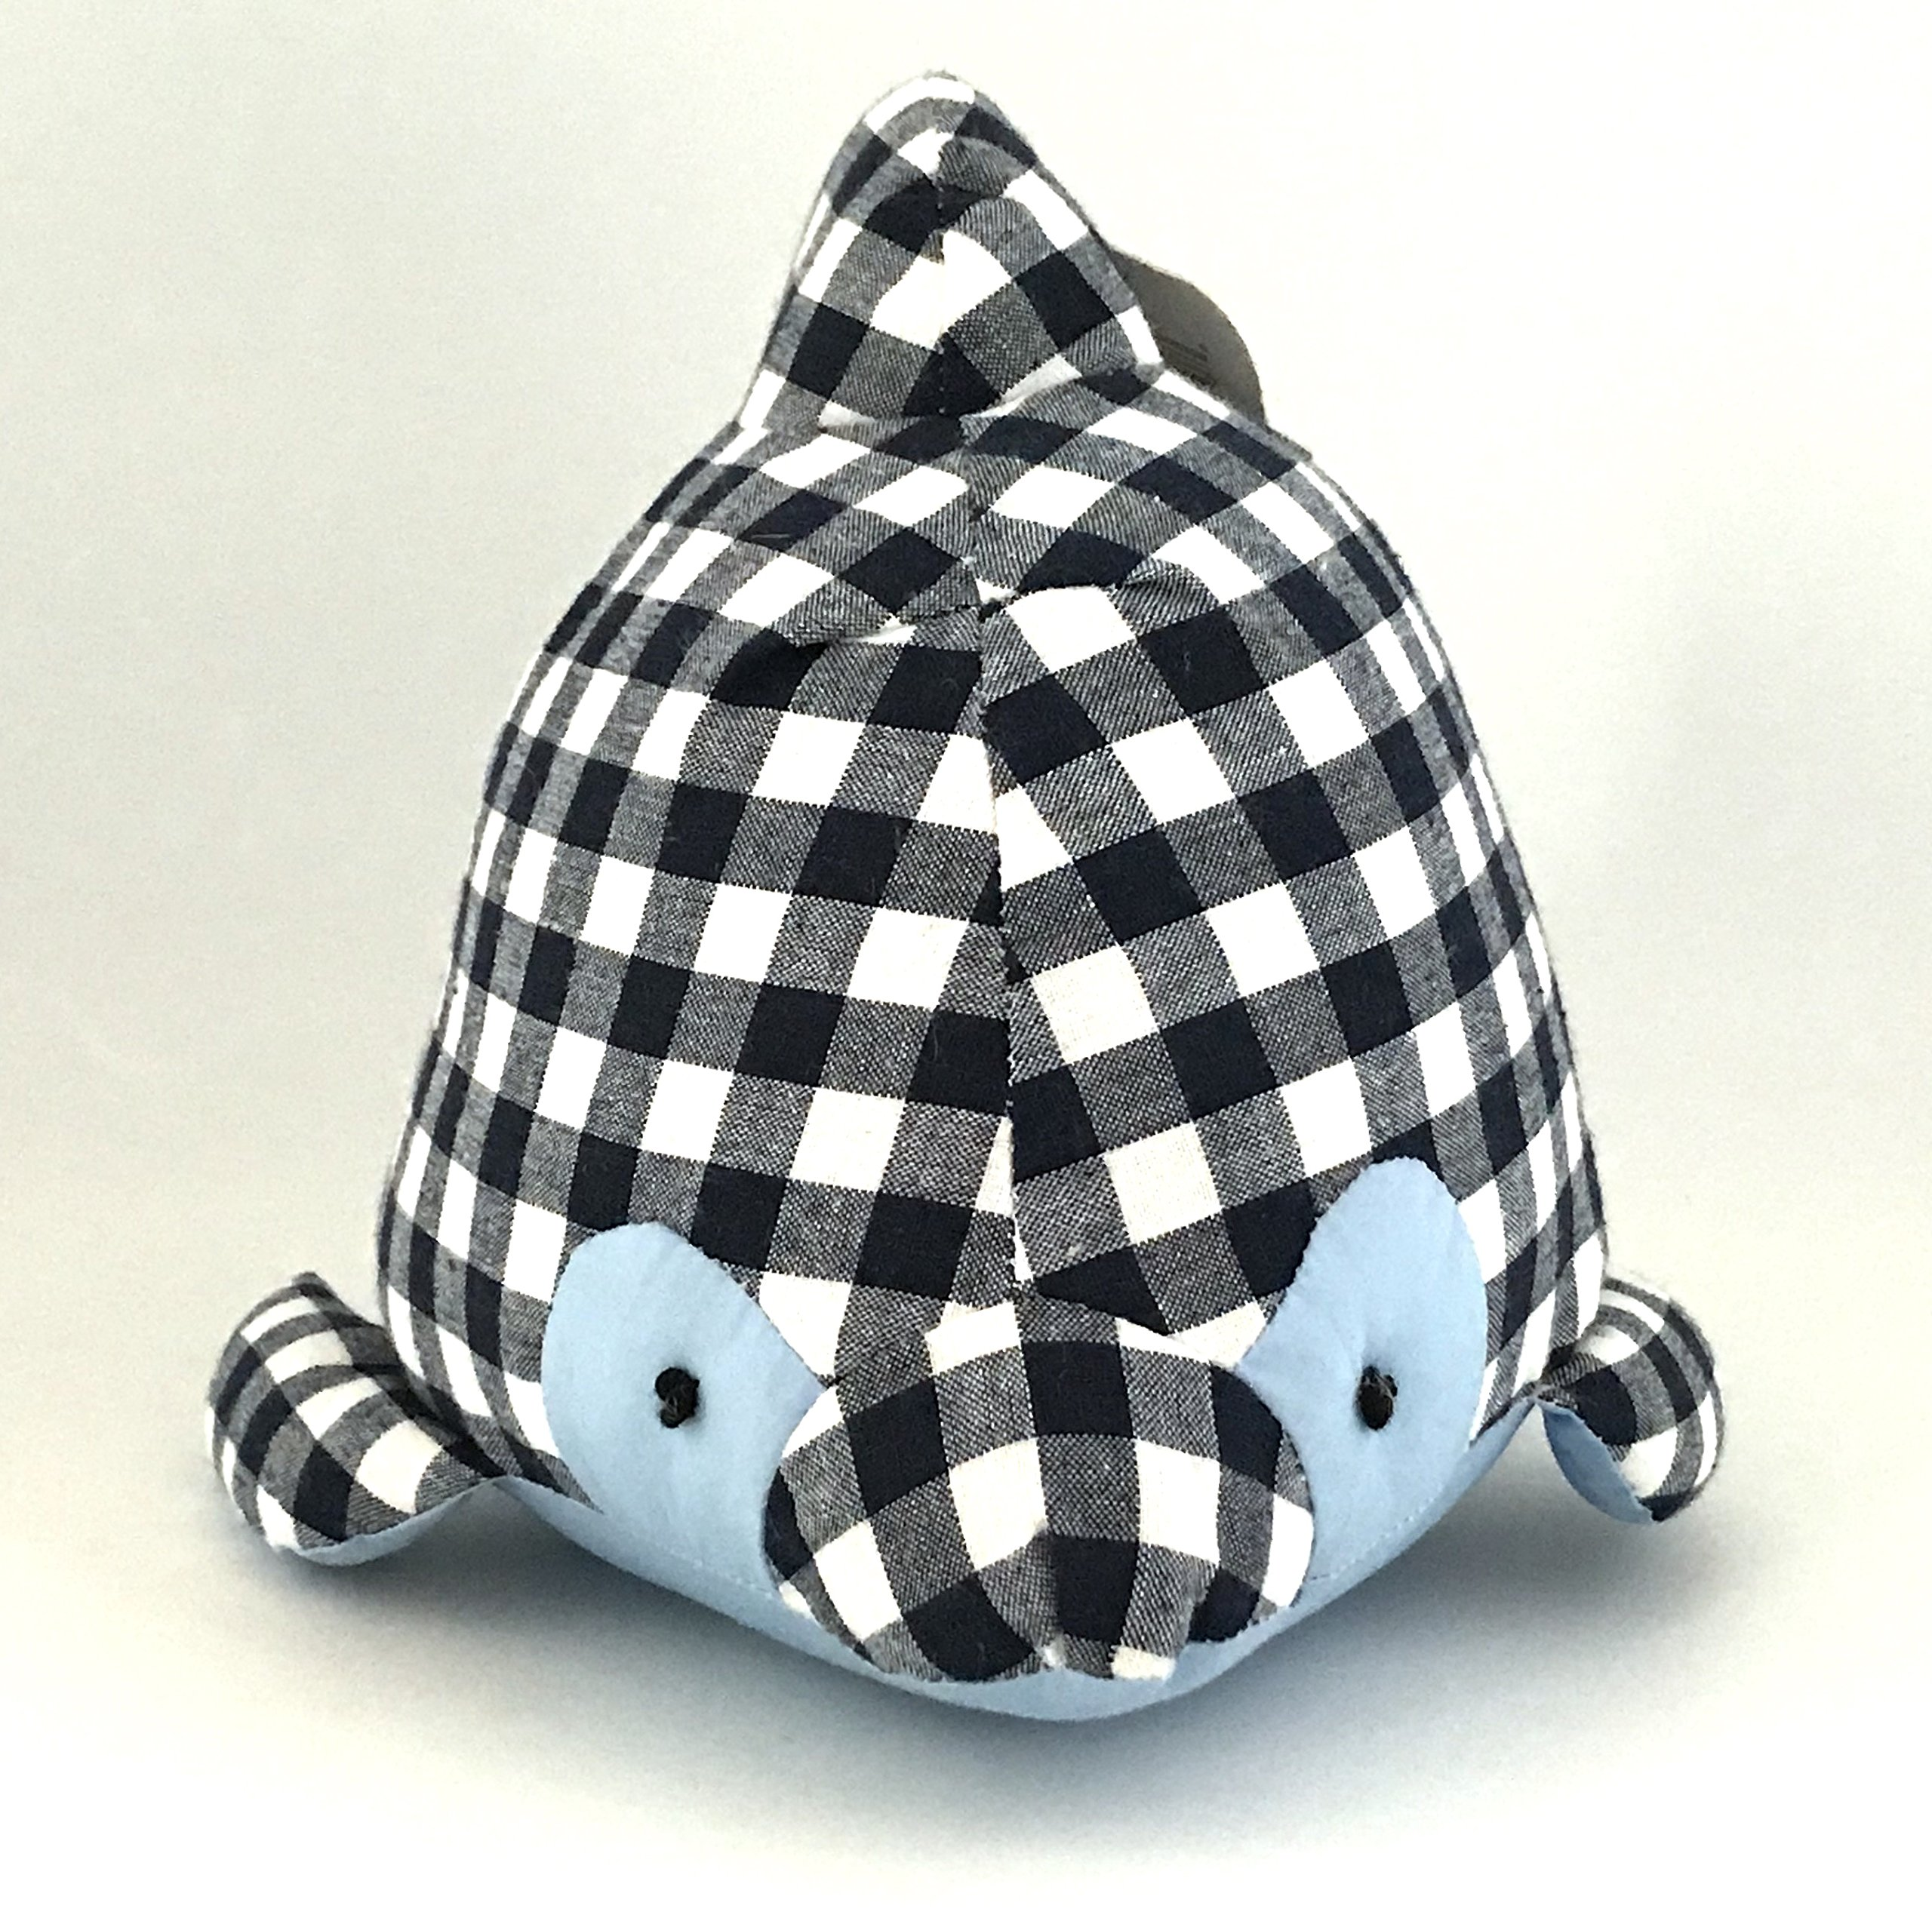 Ocean Animal Dolphin Lovers Door Stopper: Adorable Plush and Weighted Gift Home Decoration